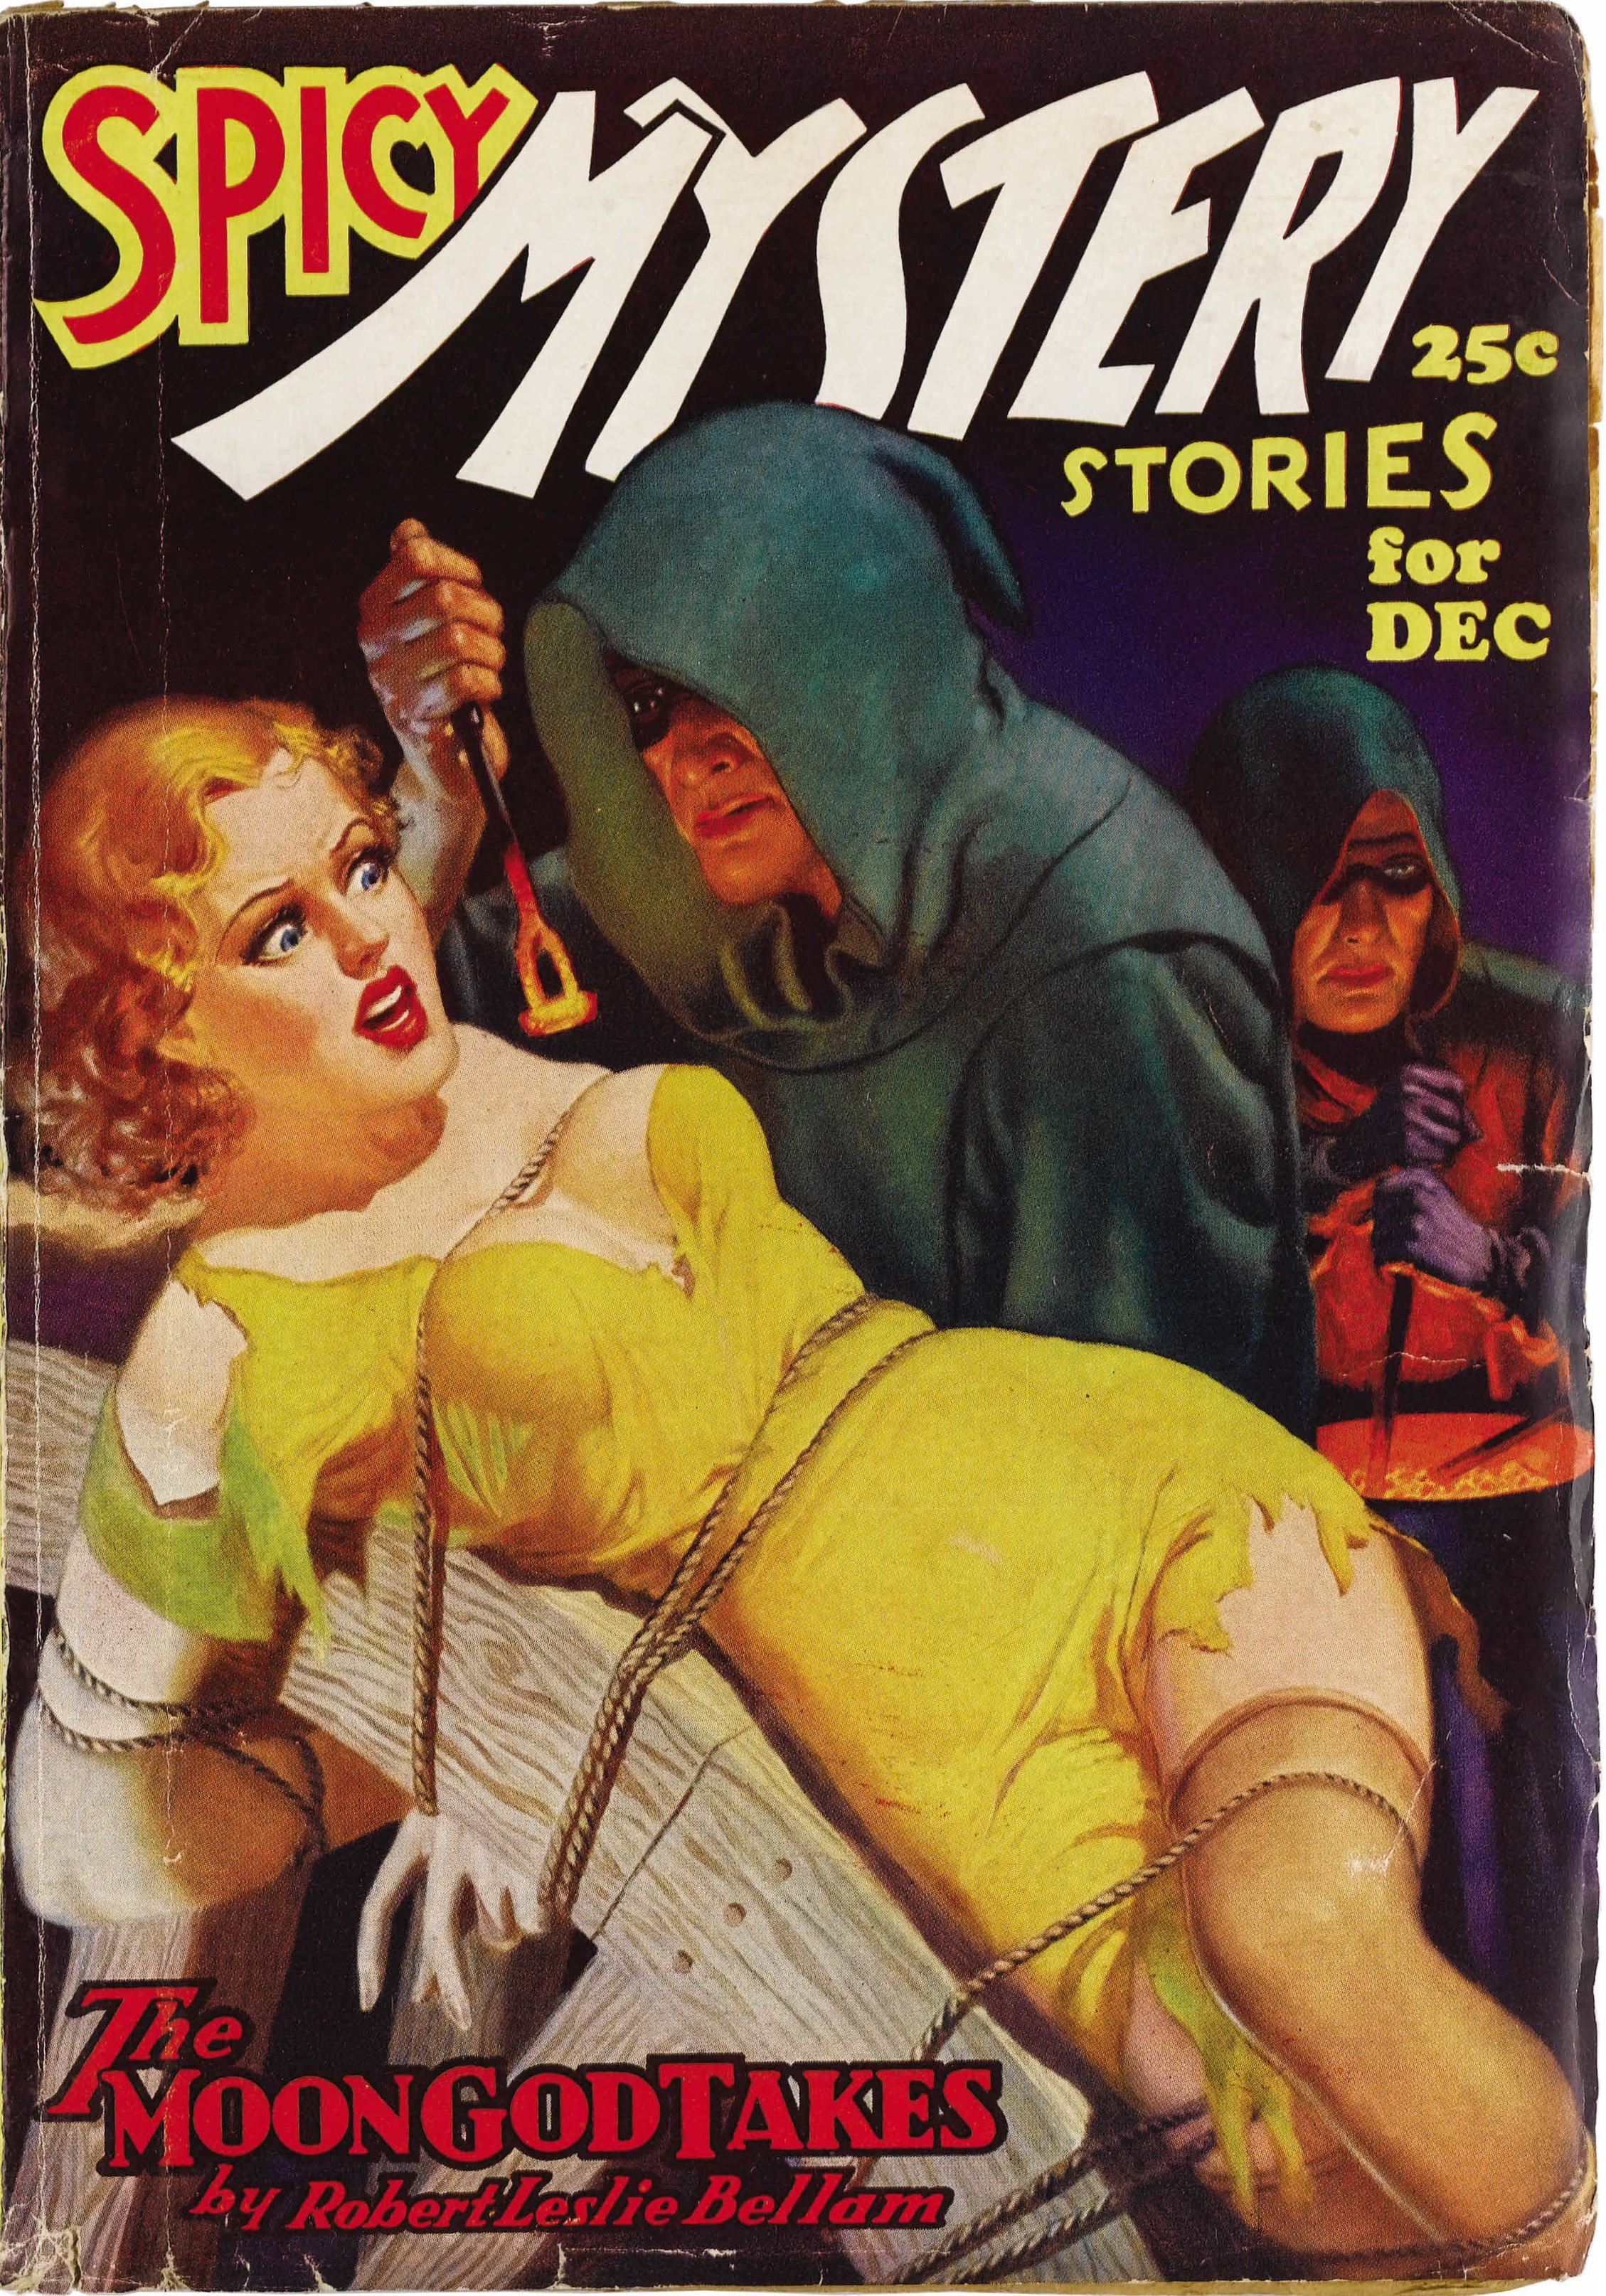 SPICY MYSTERY STORIES | vintage weird menace pulp cover art